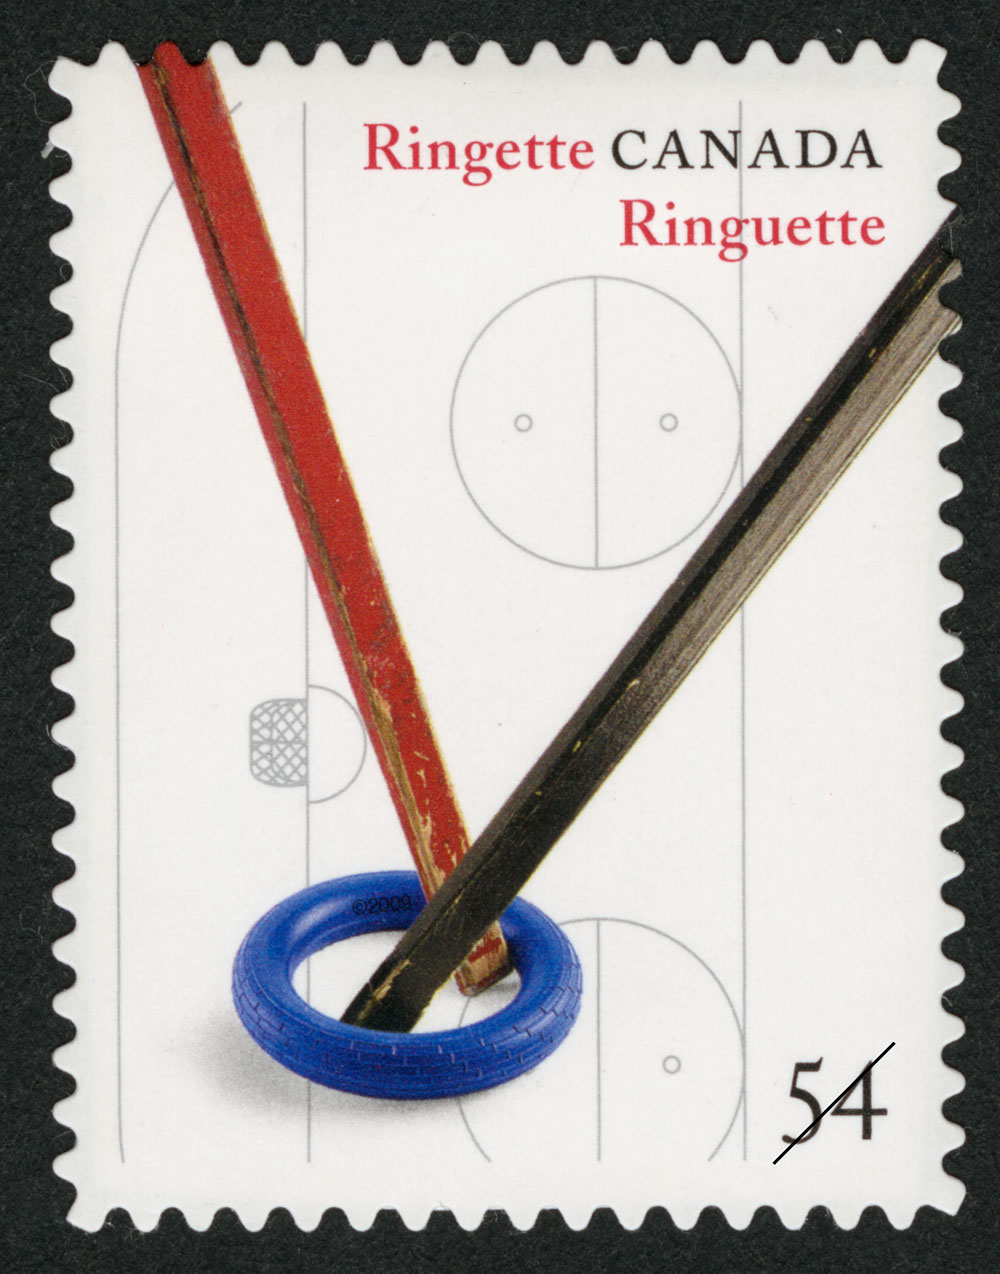 Ringette Canada Postage Stamp | Canadian Inventions: Sports